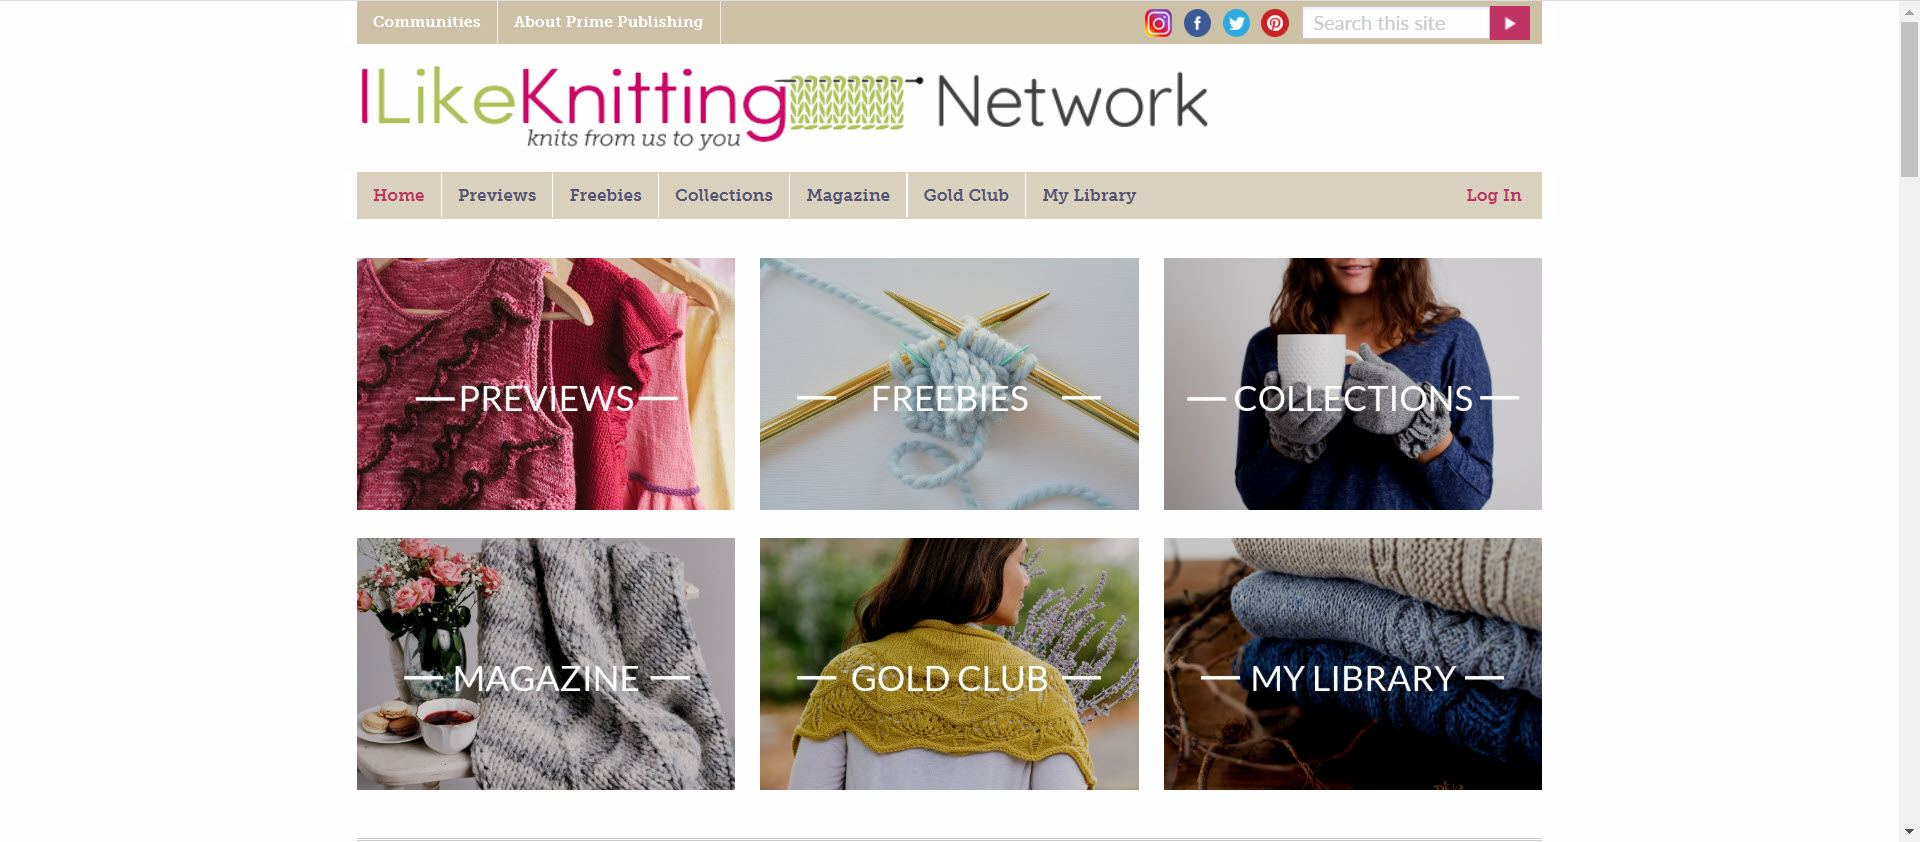 Knitting Affiliate Programs - I like knitting